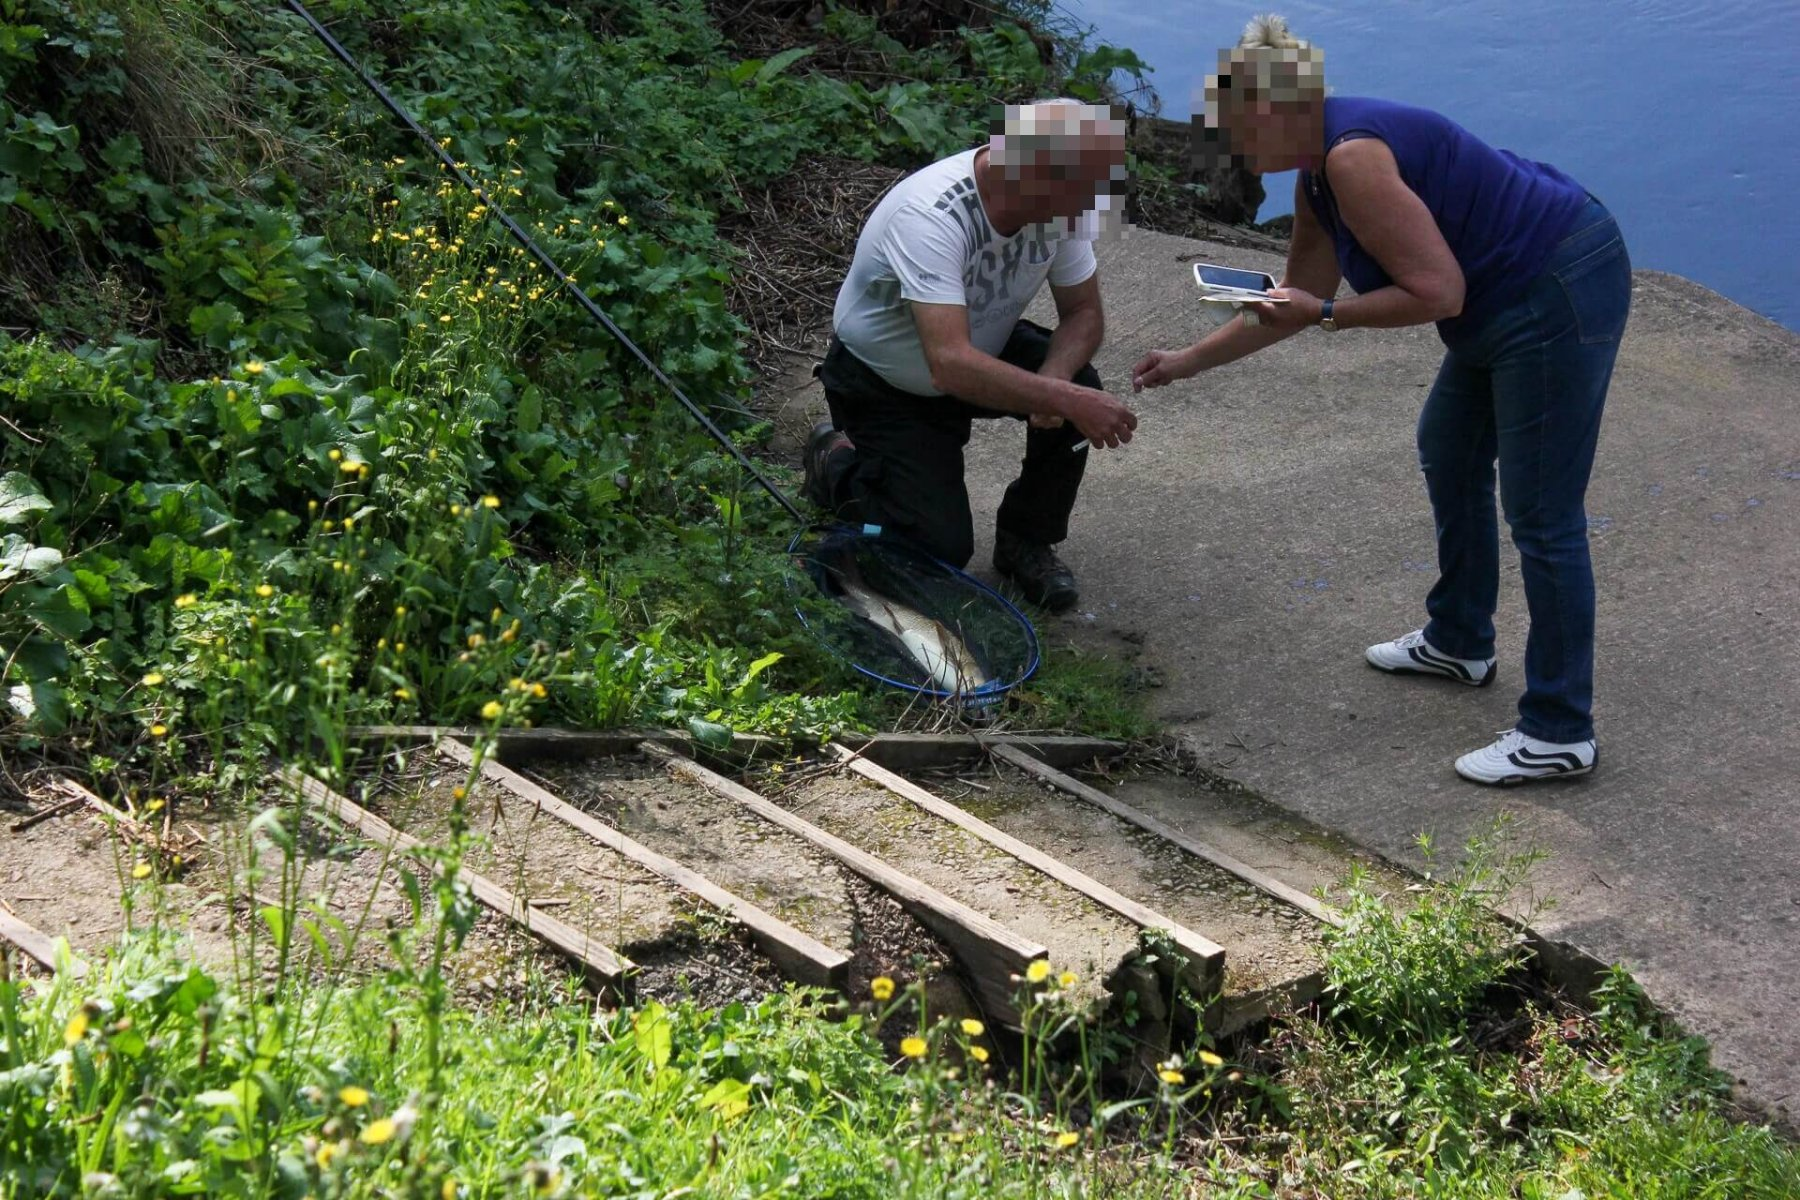 couple-fishing-in-river-wye-symonds-yat-east-newport-anglers-stretch